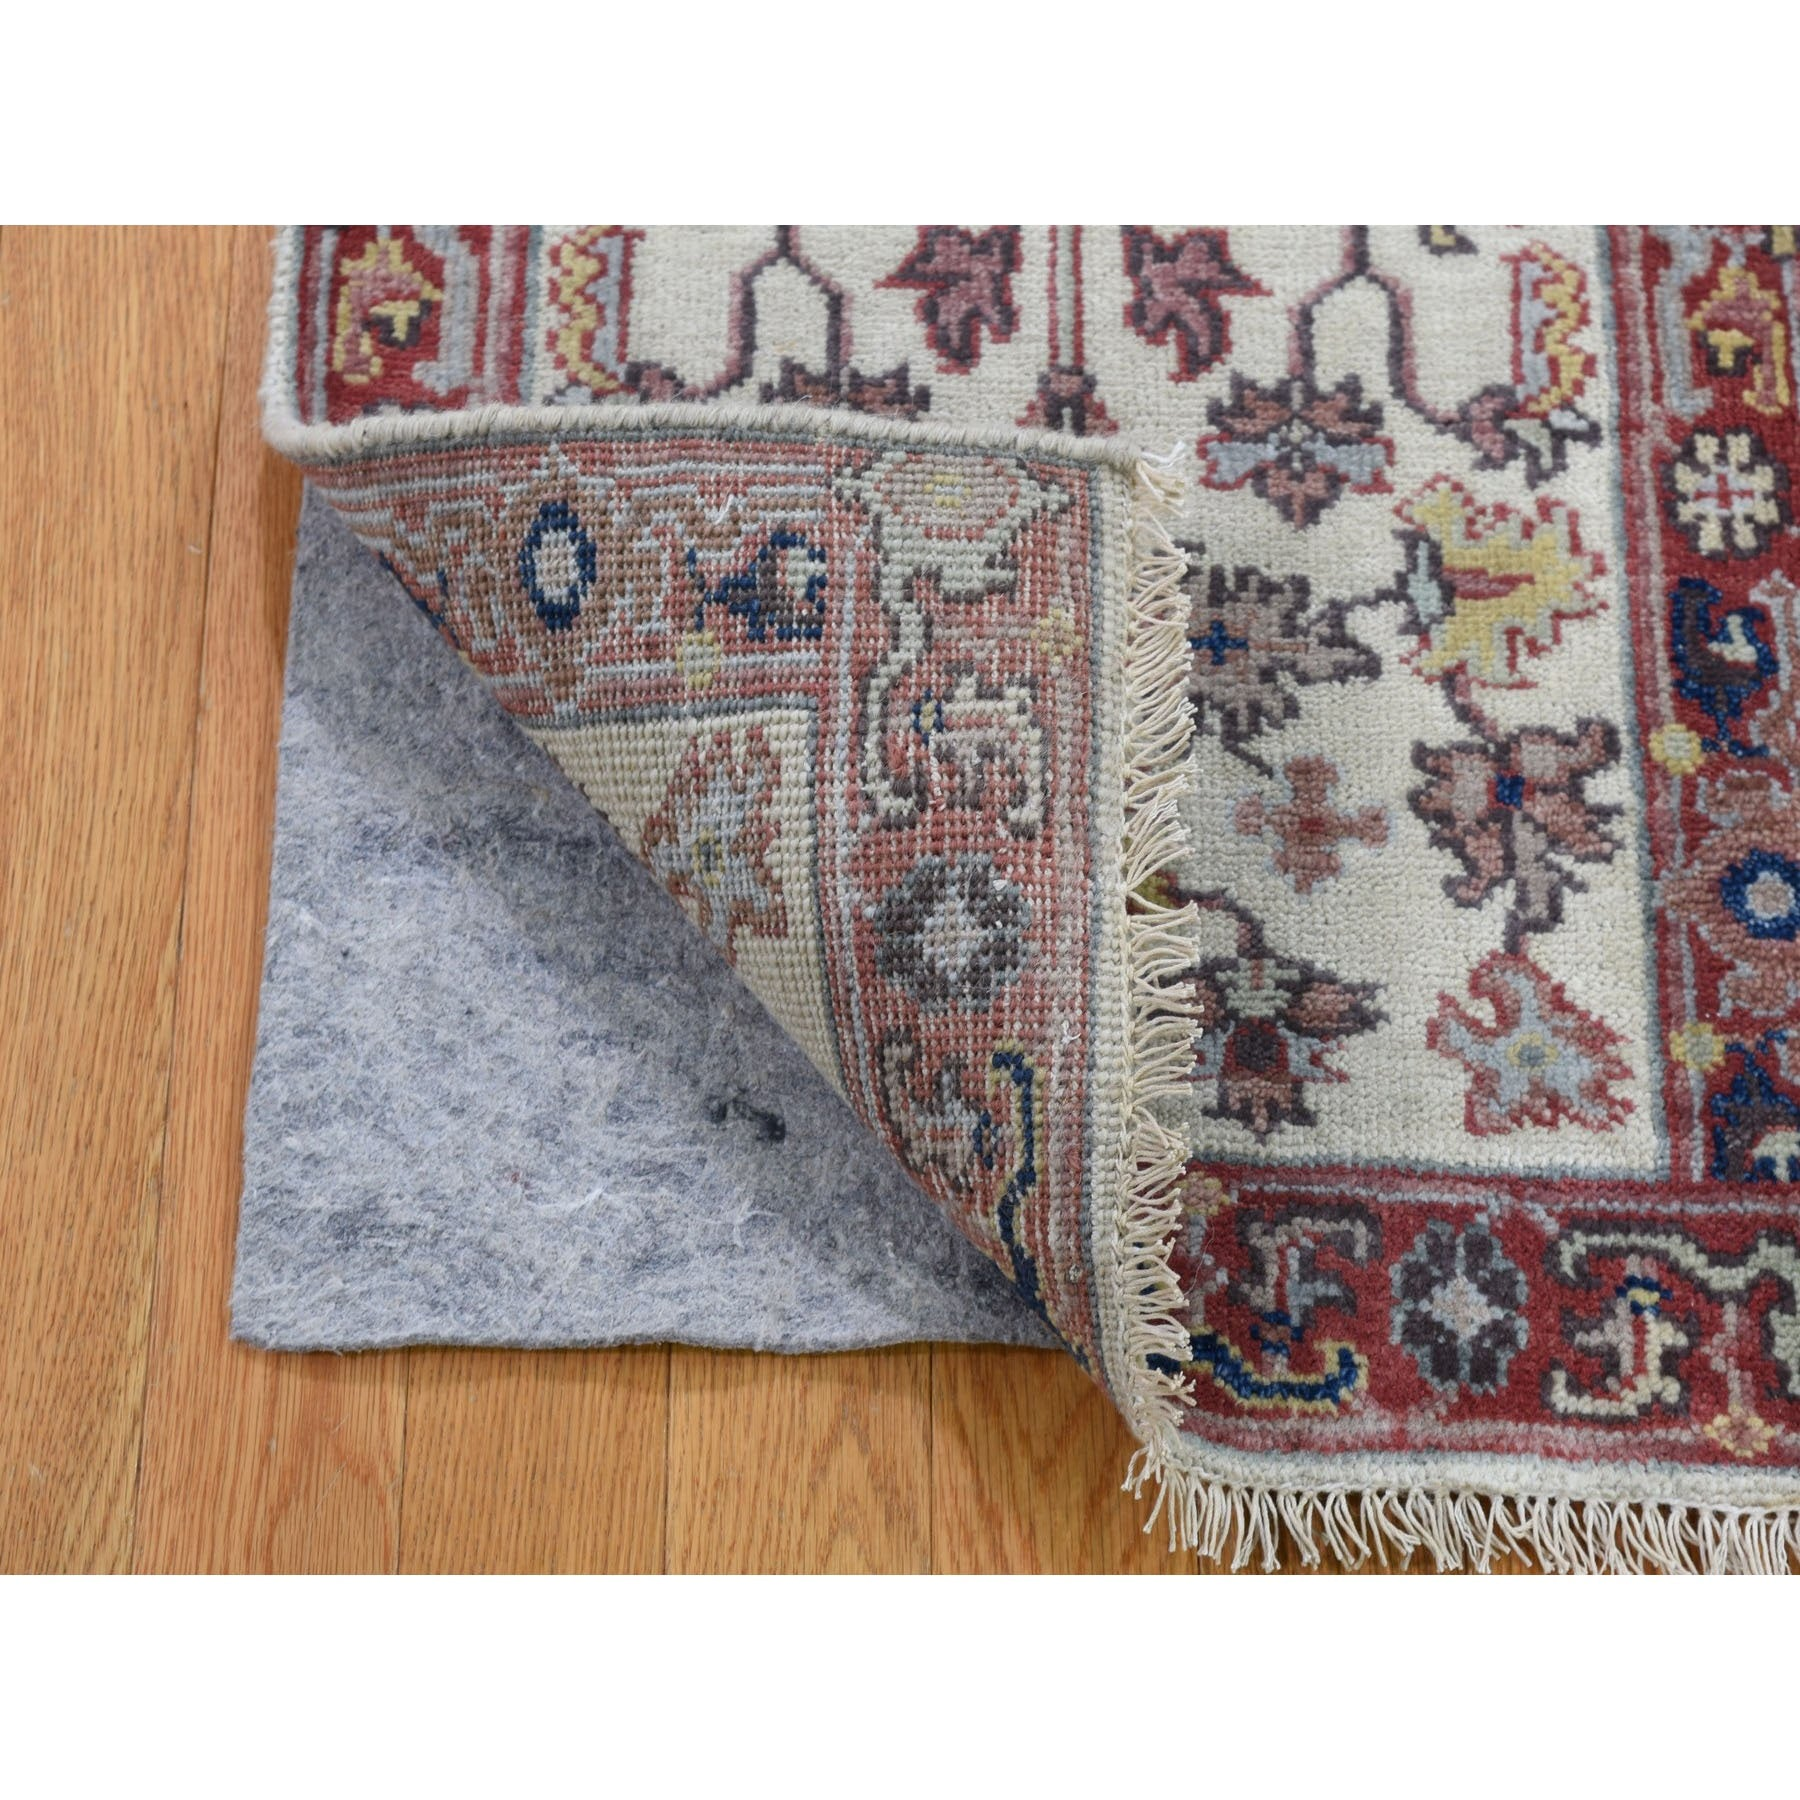 "Handmade Heriz Rectangle Rug > Design# SH47344 > Size: 1'-10"" x 3'-0"" [ONLINE ONLY]"